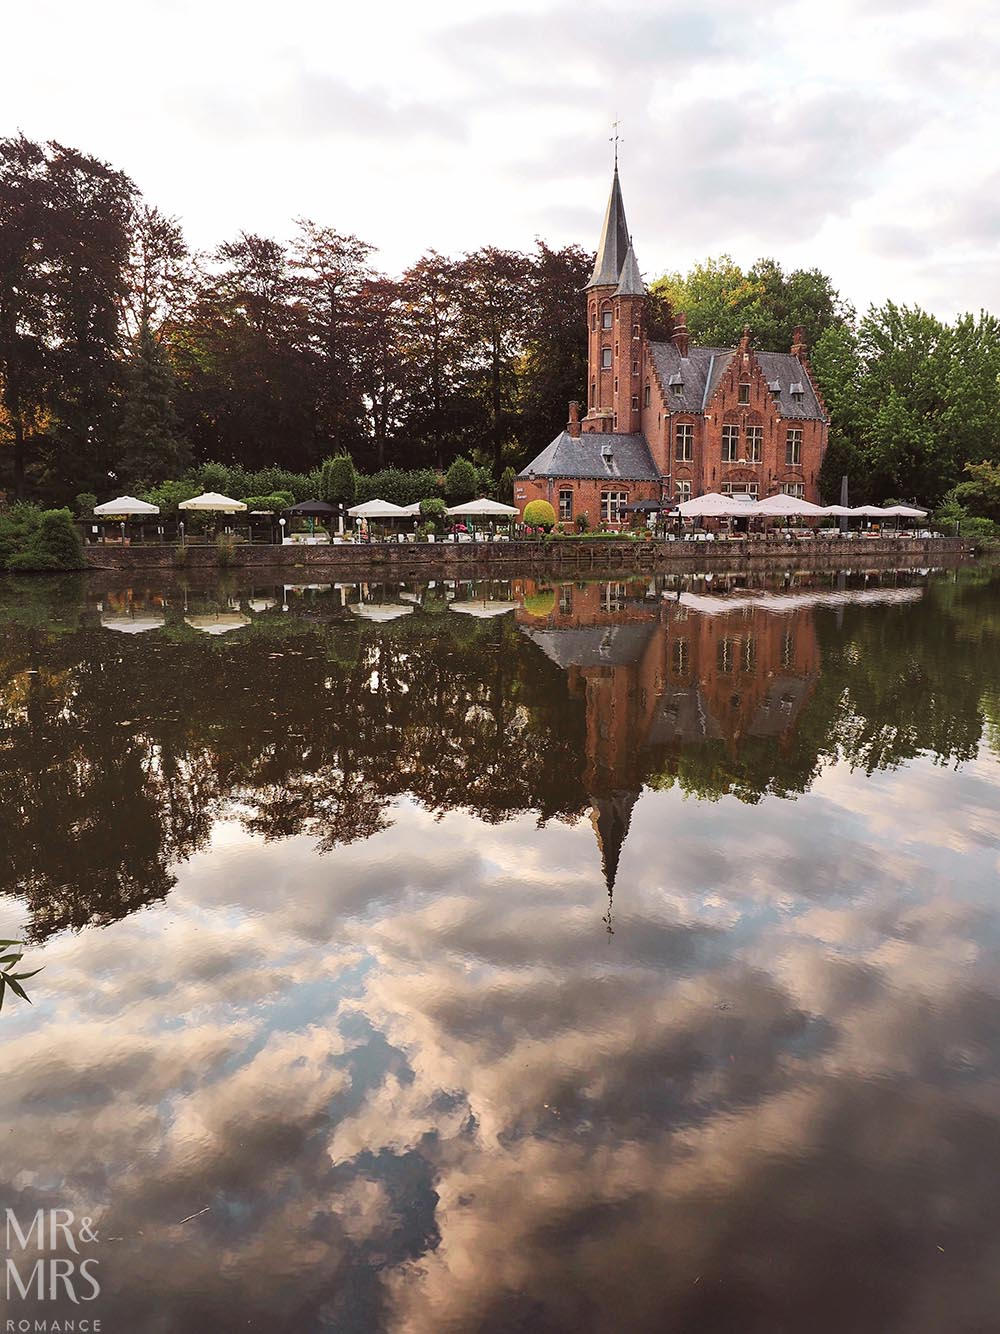 Bruges, Belgium - restaurant on the canal